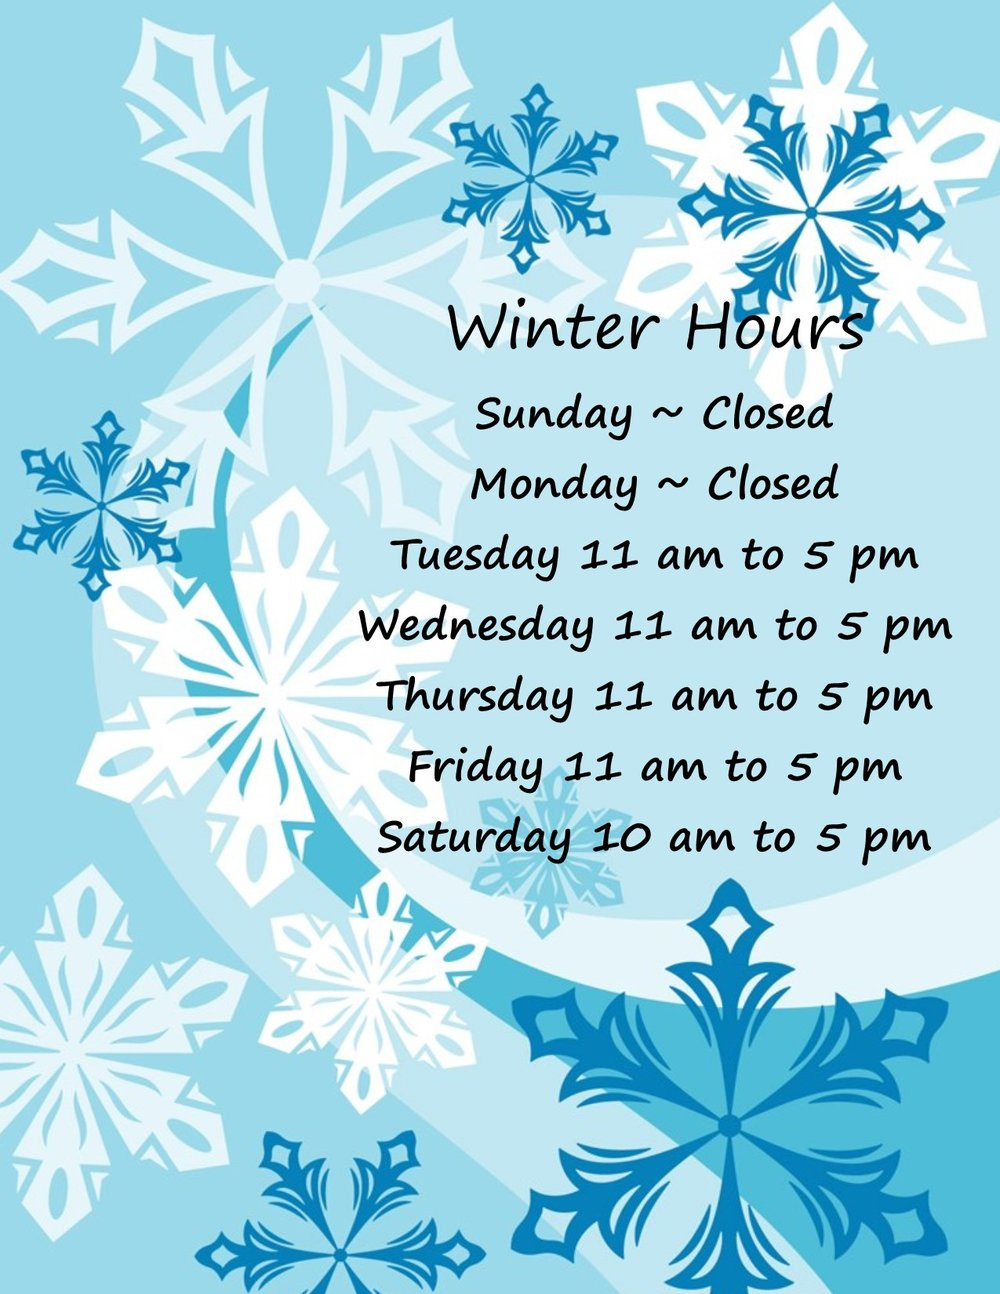 Winter Hours.jpg